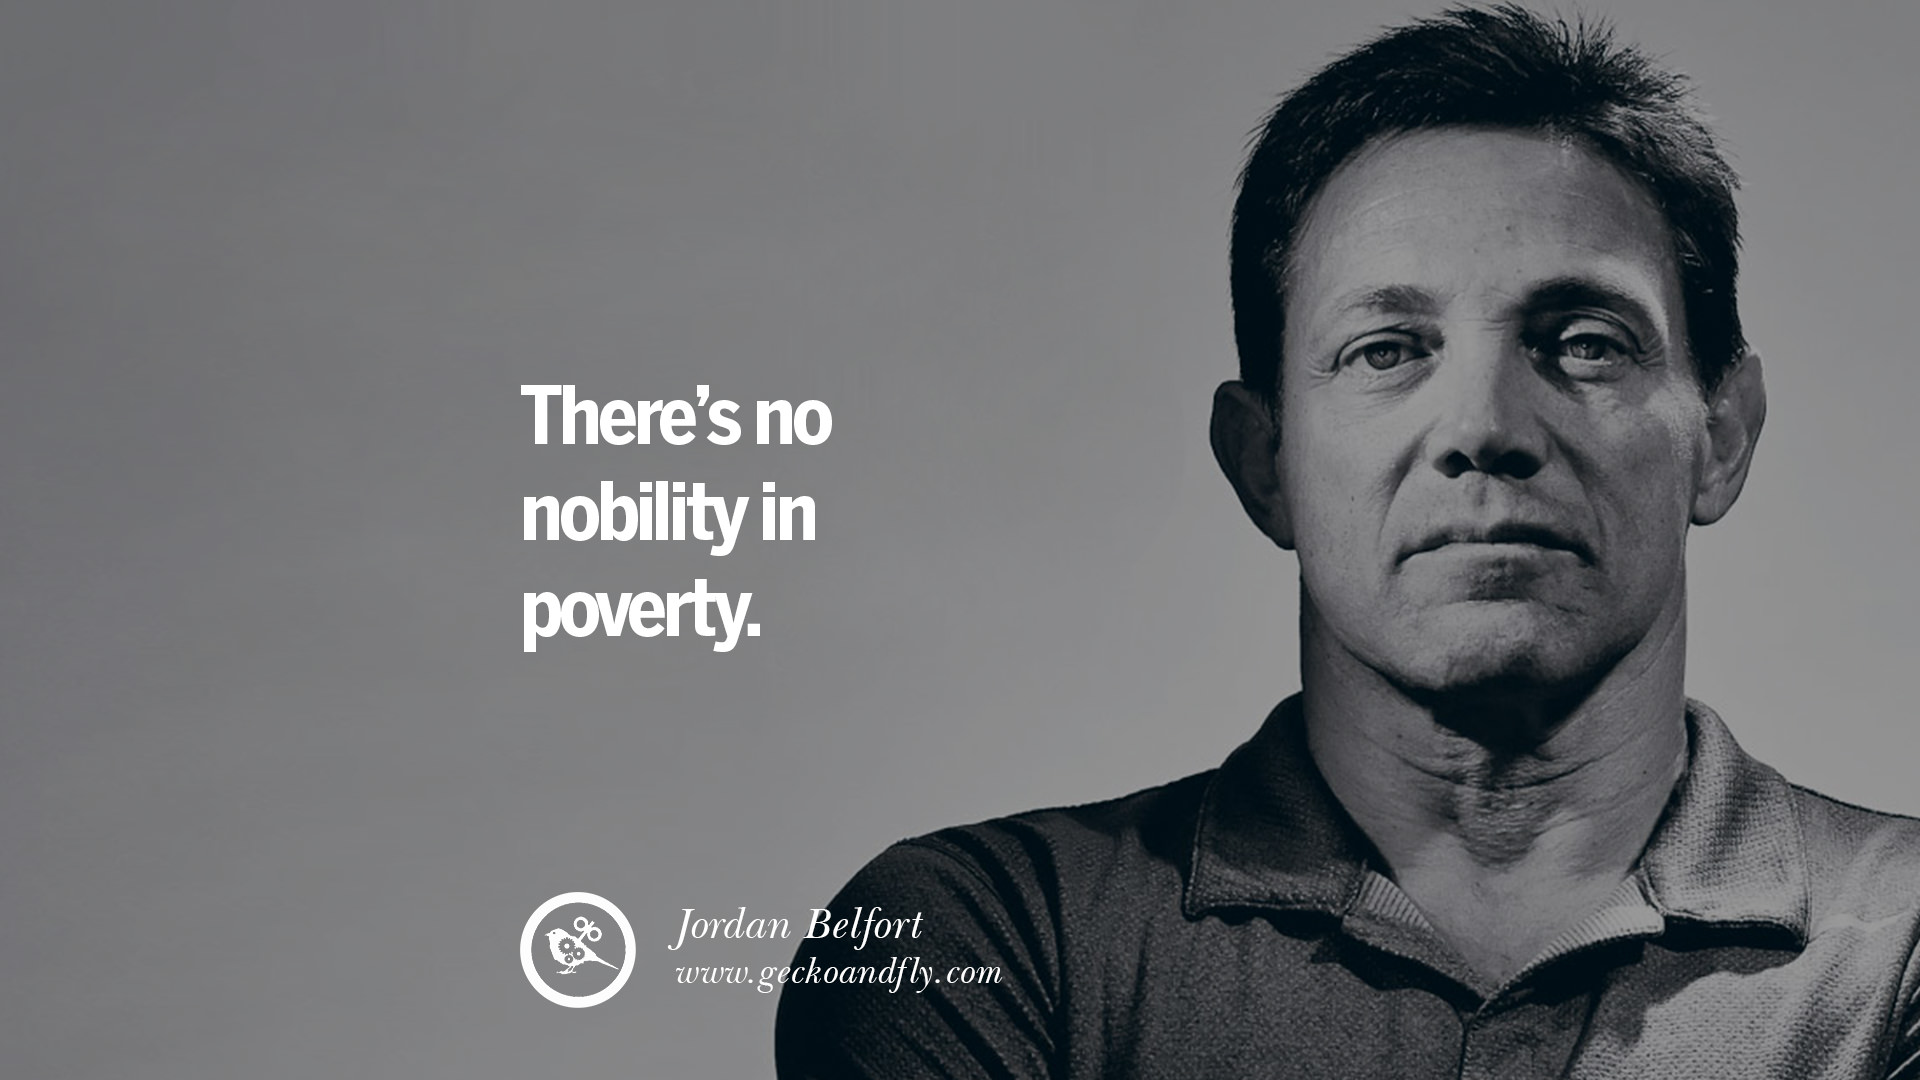 Wall Street Quotes Glamorous 13 Empowering Jordan Belfort Quotes As Seen In Wolf Of Wall Street